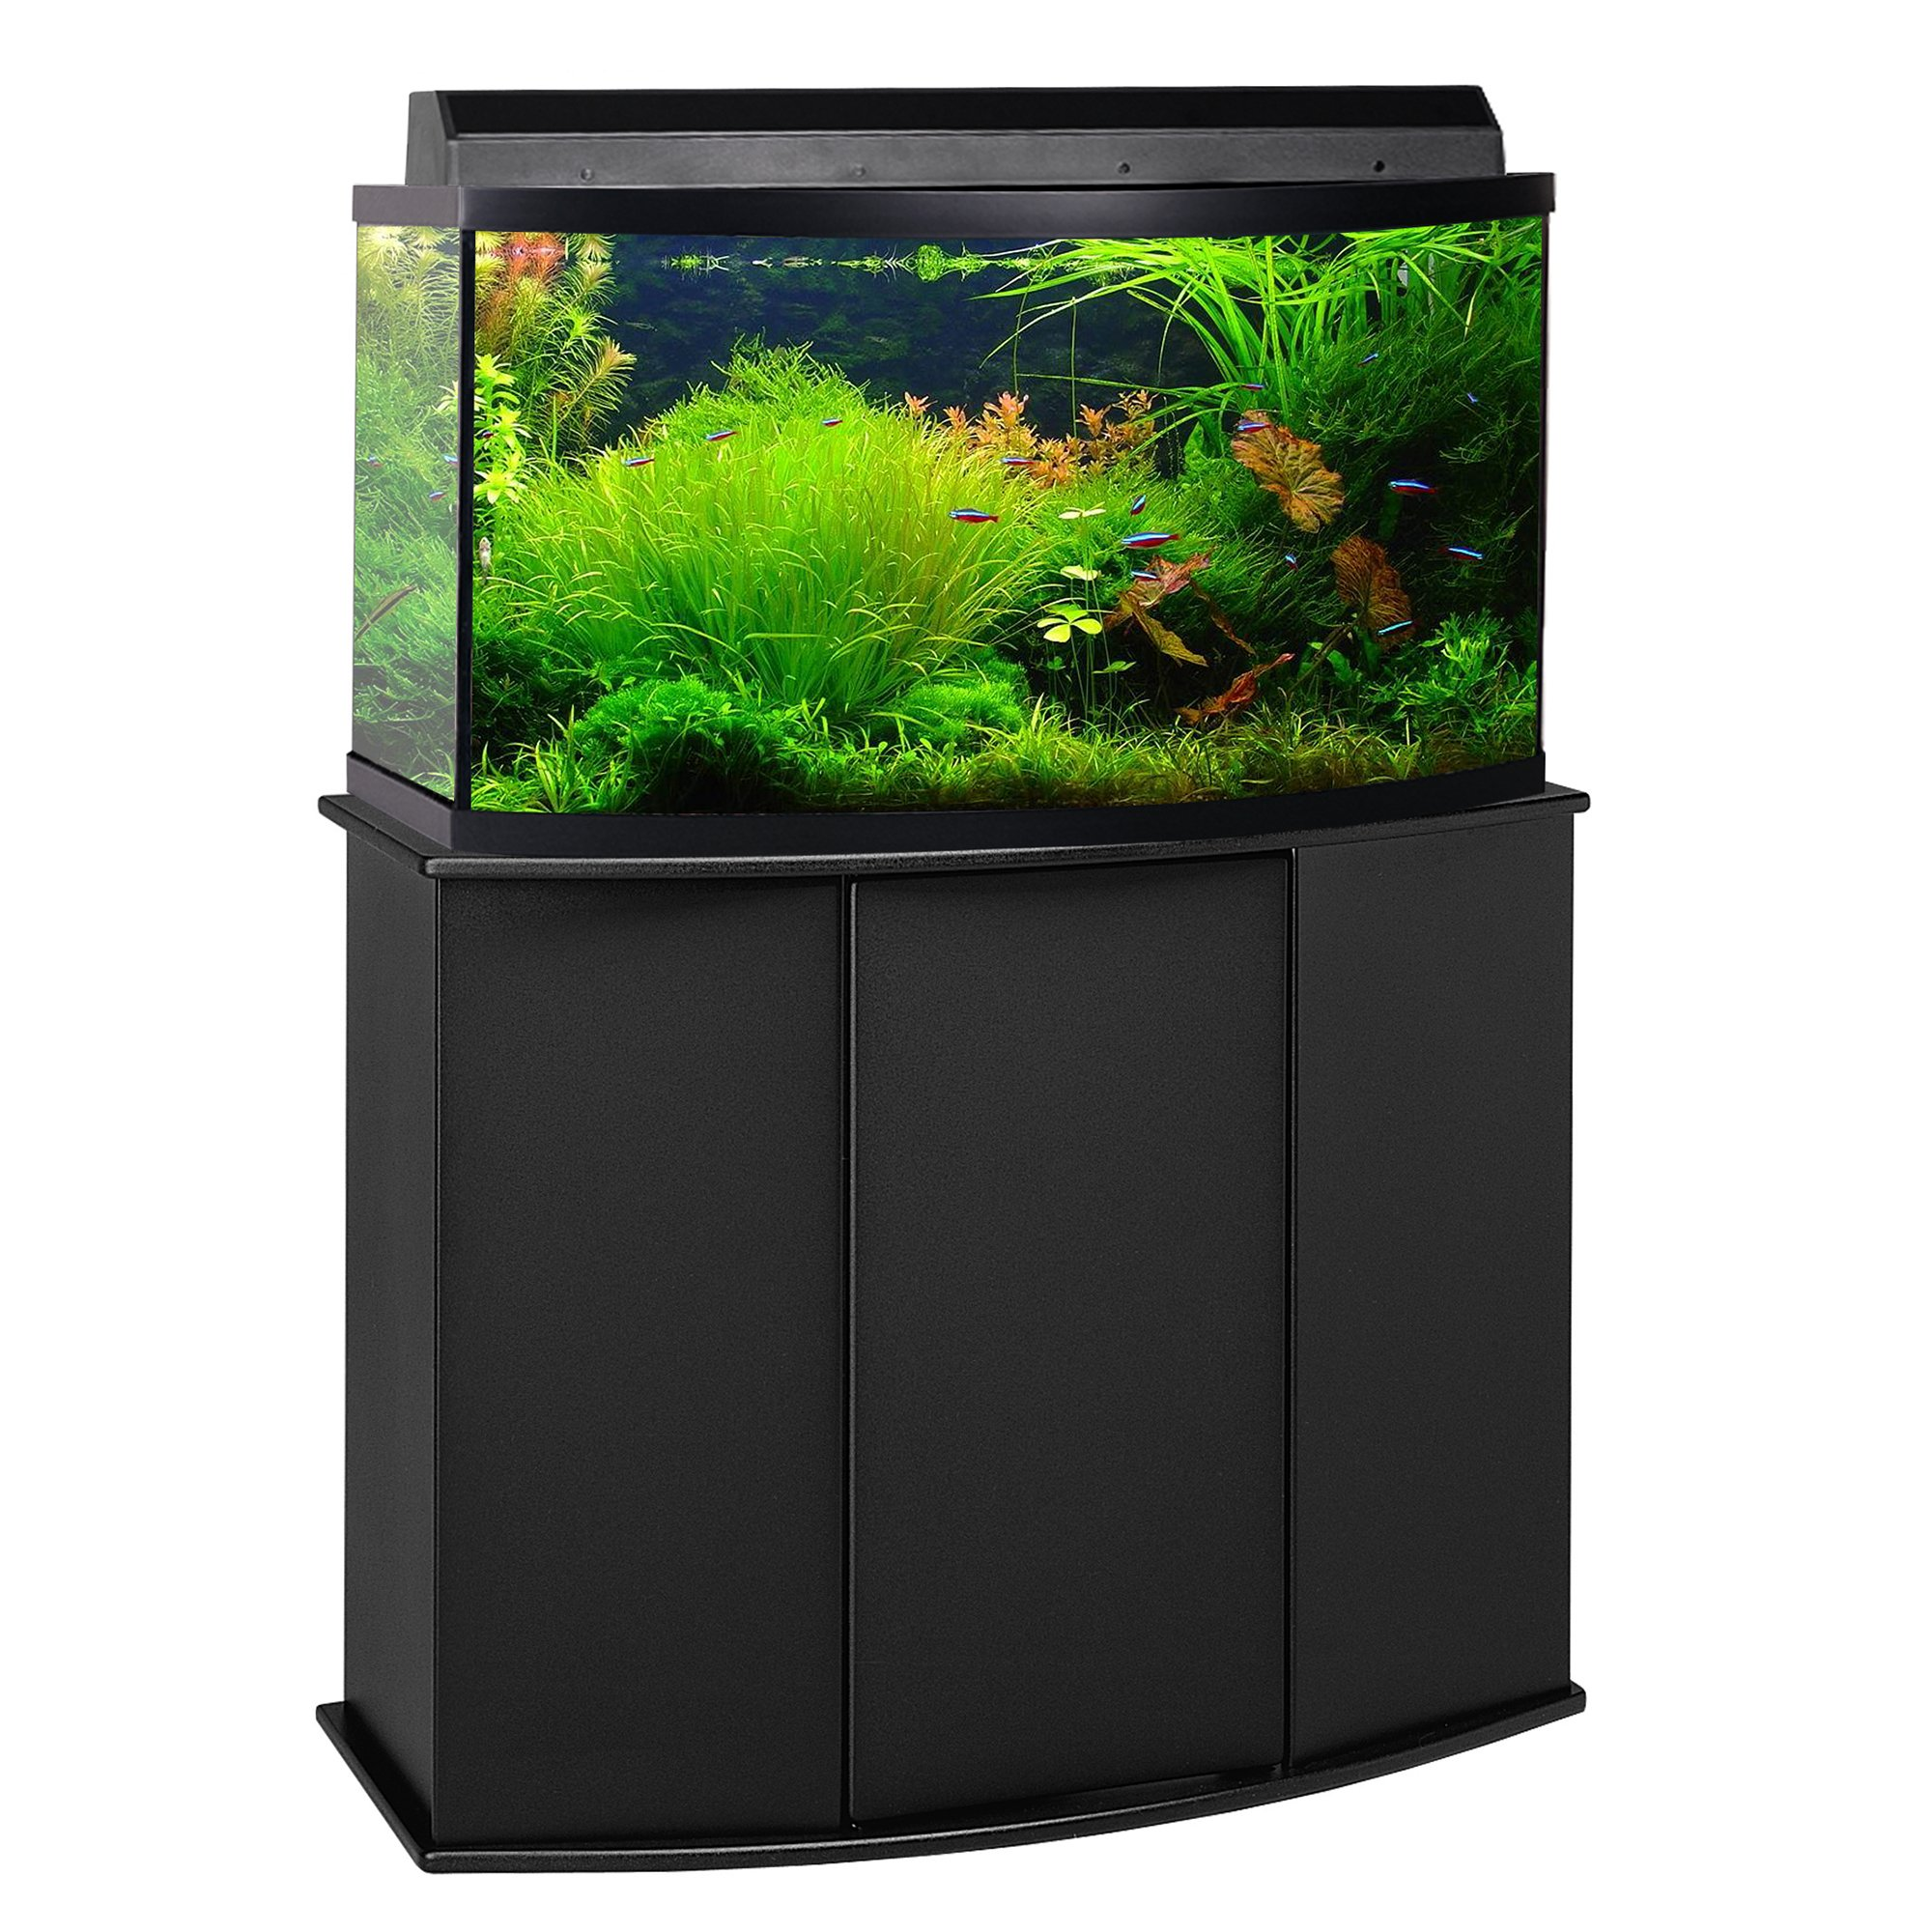 Aquarium stand petco fundamentals black scroll aquarium for 55 gallon fish tank petco